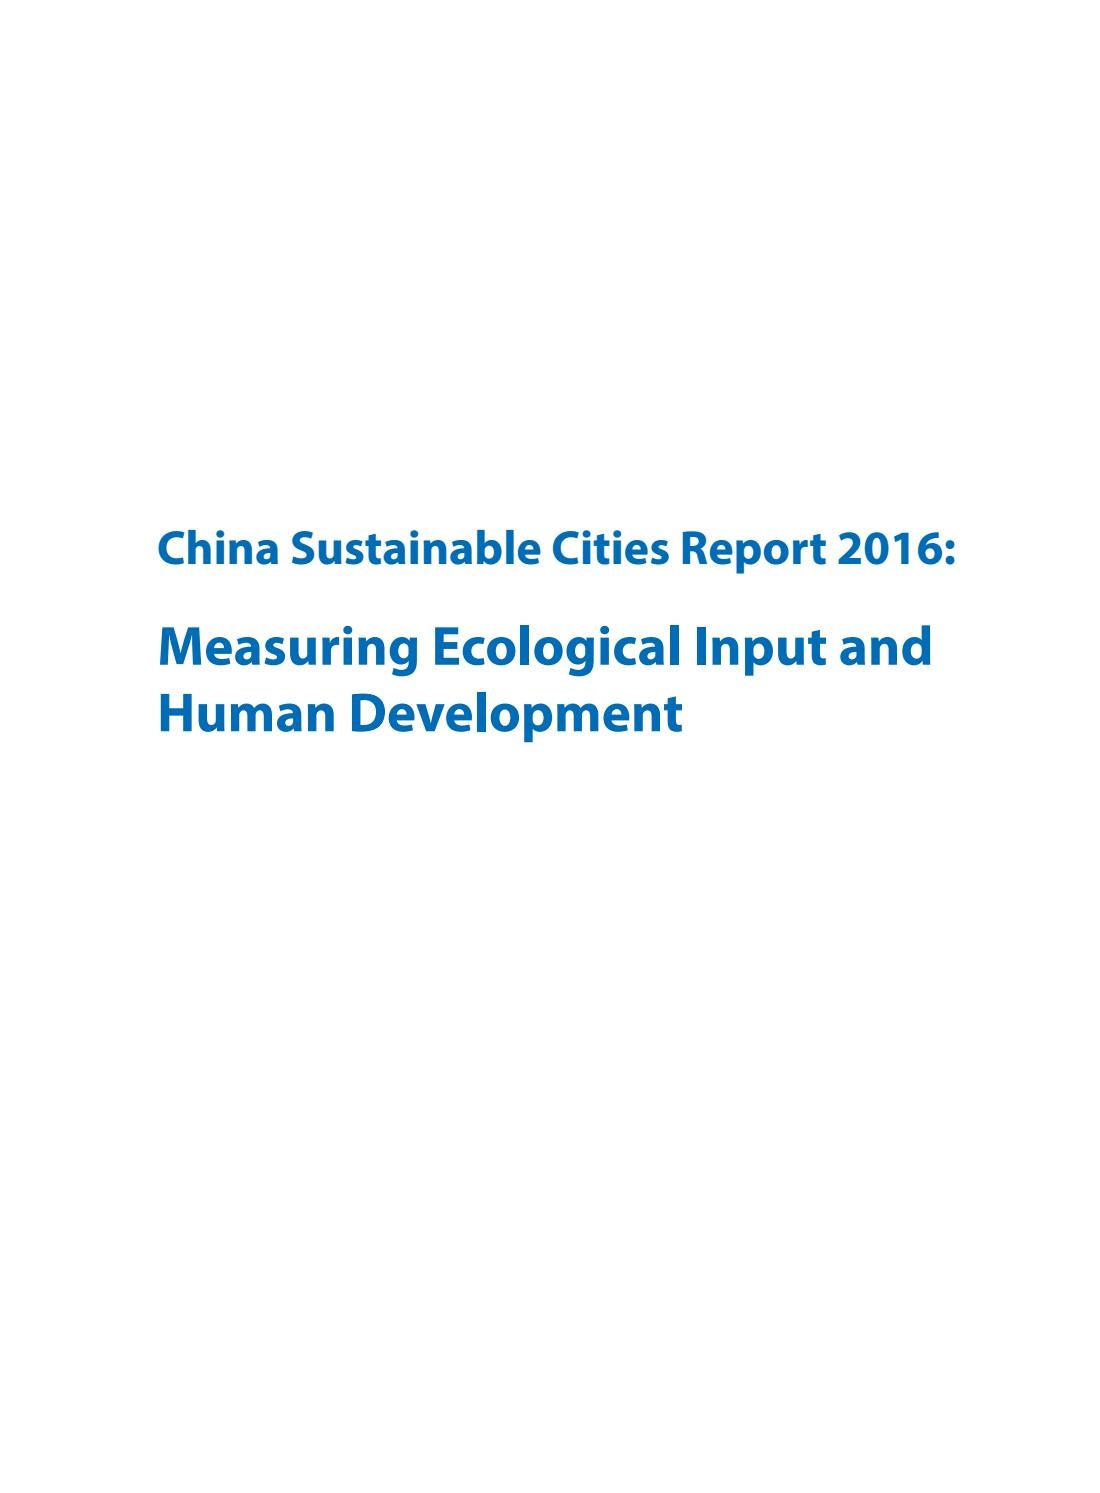 China Sustainable Cities Report 2016 Measuring Ecological Input And Wildfire Scooter Kick Stand Saftey Switch Wiring Diagram Human Development By United Nations Programme Undp Issuu